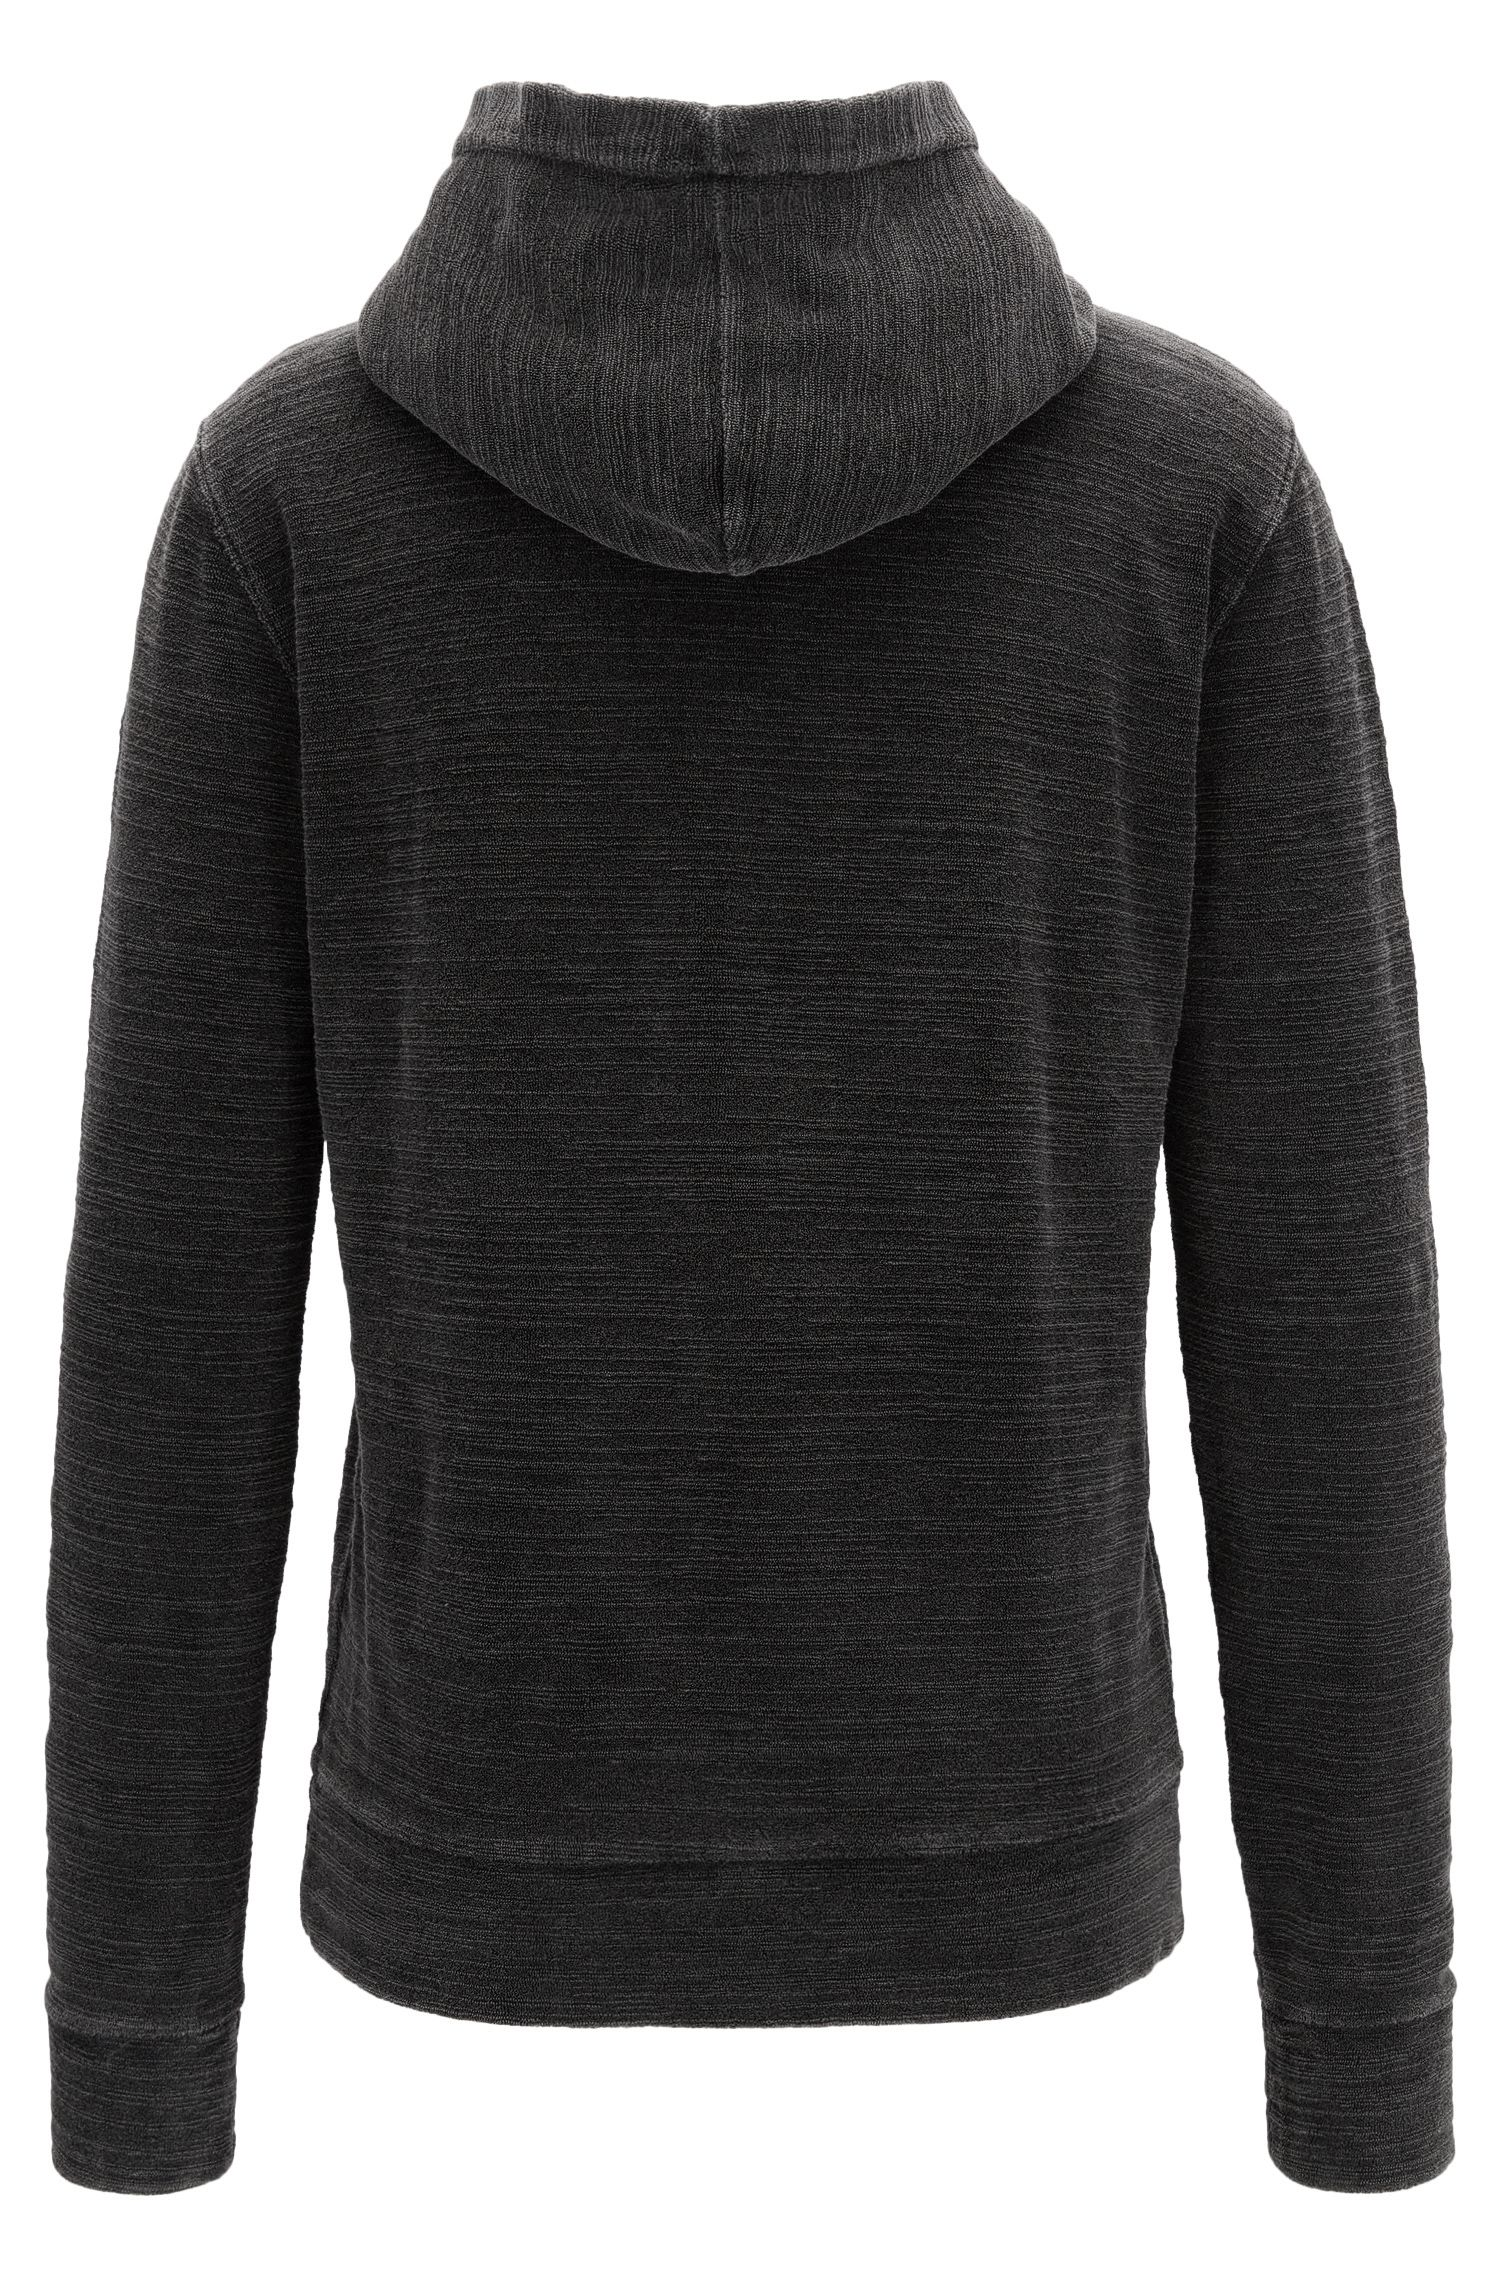 Zip-neck hoodie in acid-washed cotton terry